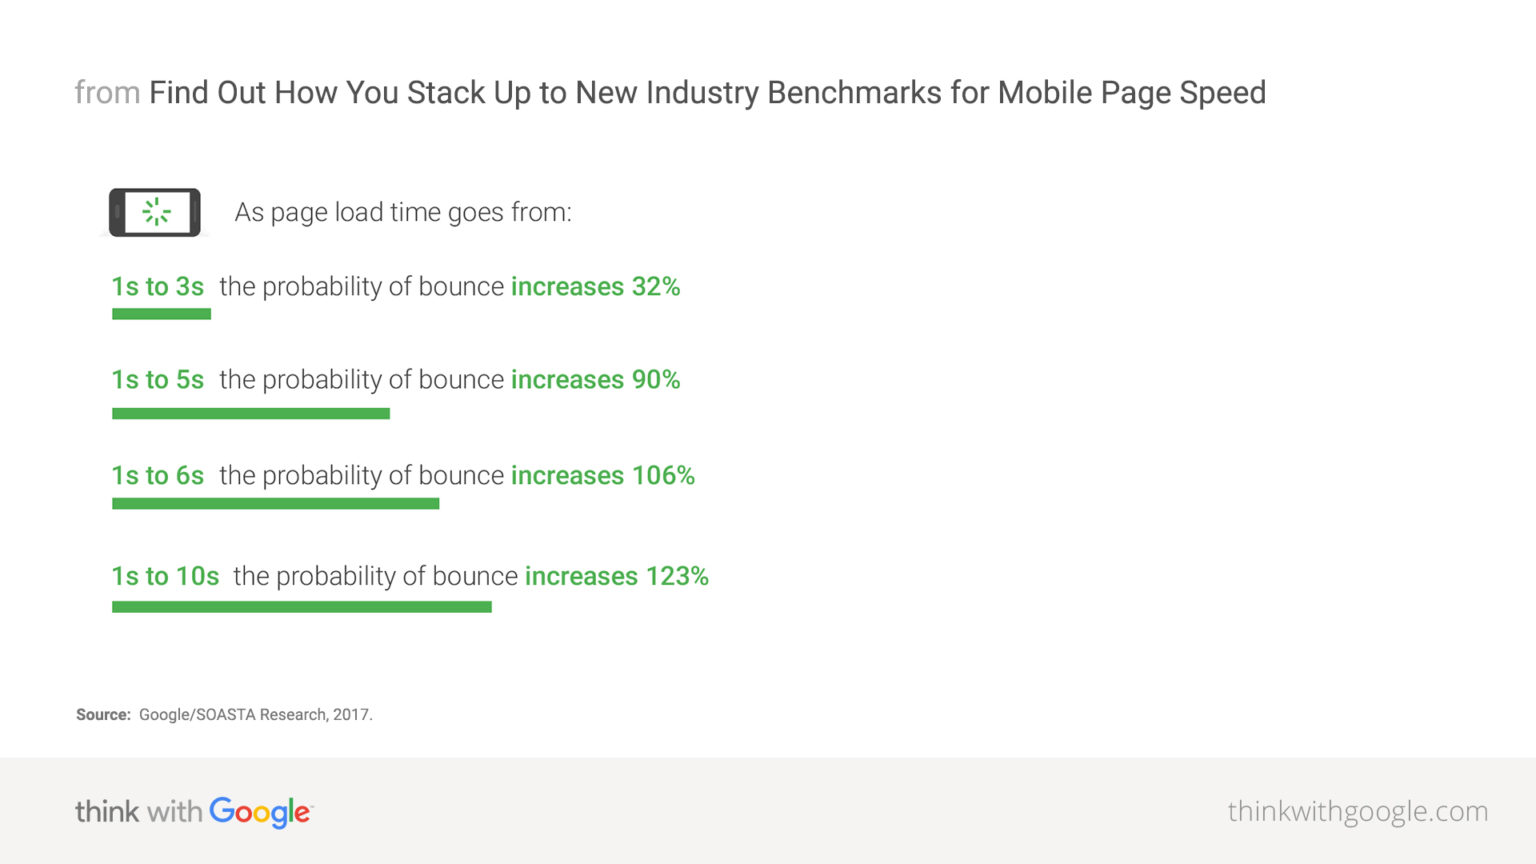 mobile page speed new industry benchmarks that impact customer experience